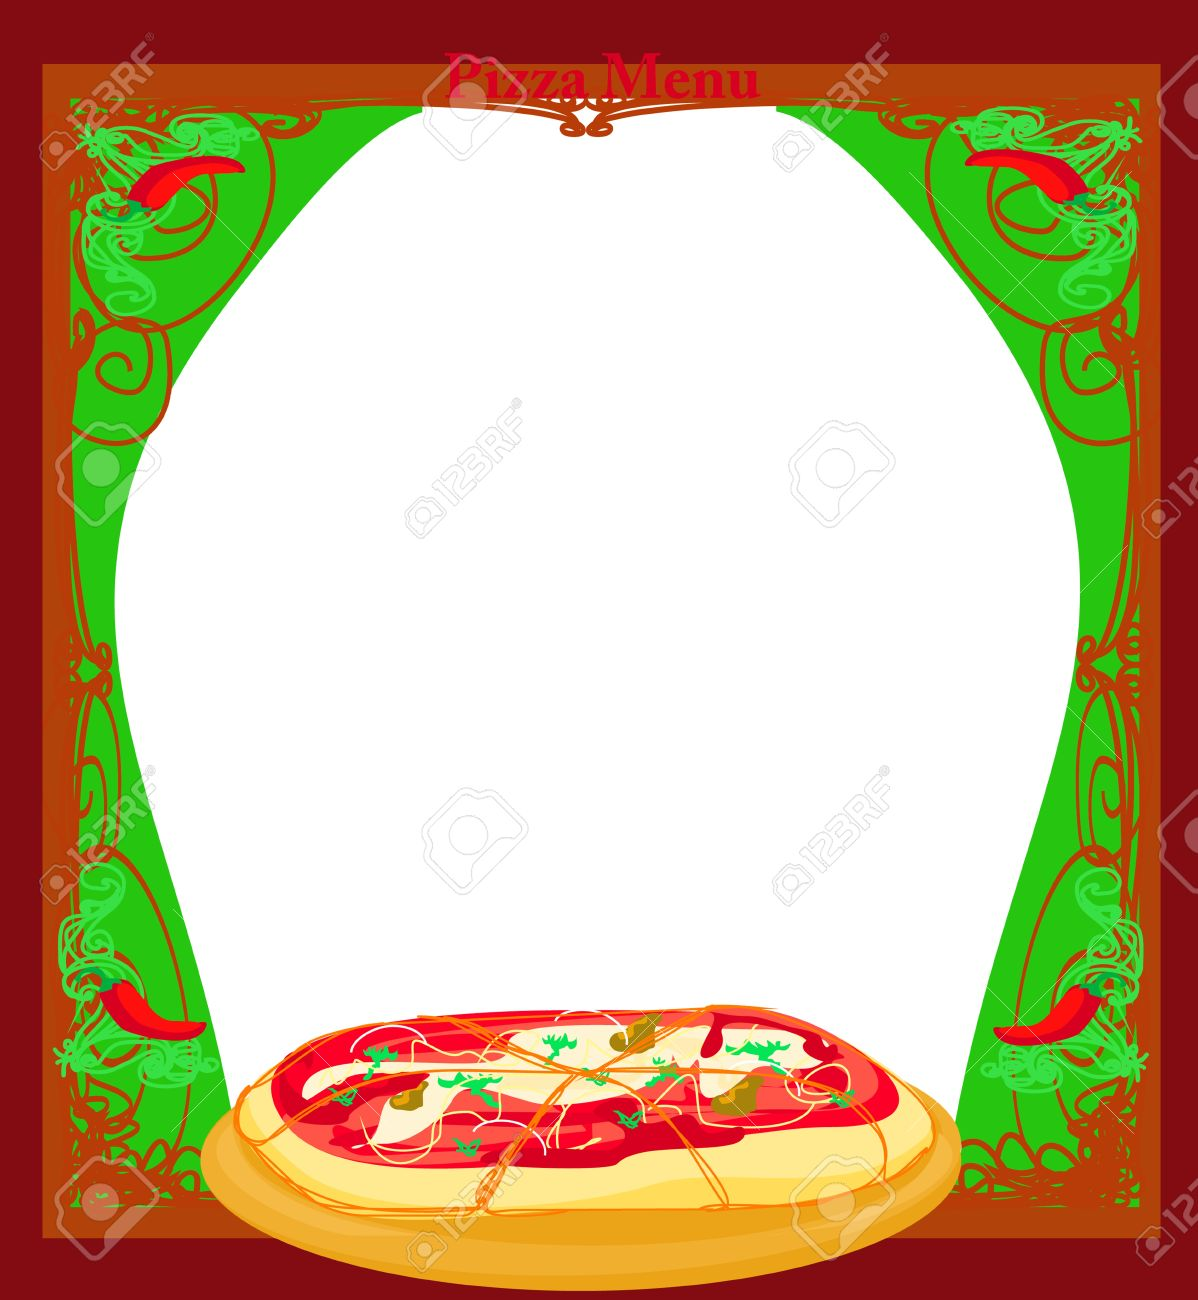 Pizza Menu Template Royalty Free Cliparts, Vectors, And Stock ...